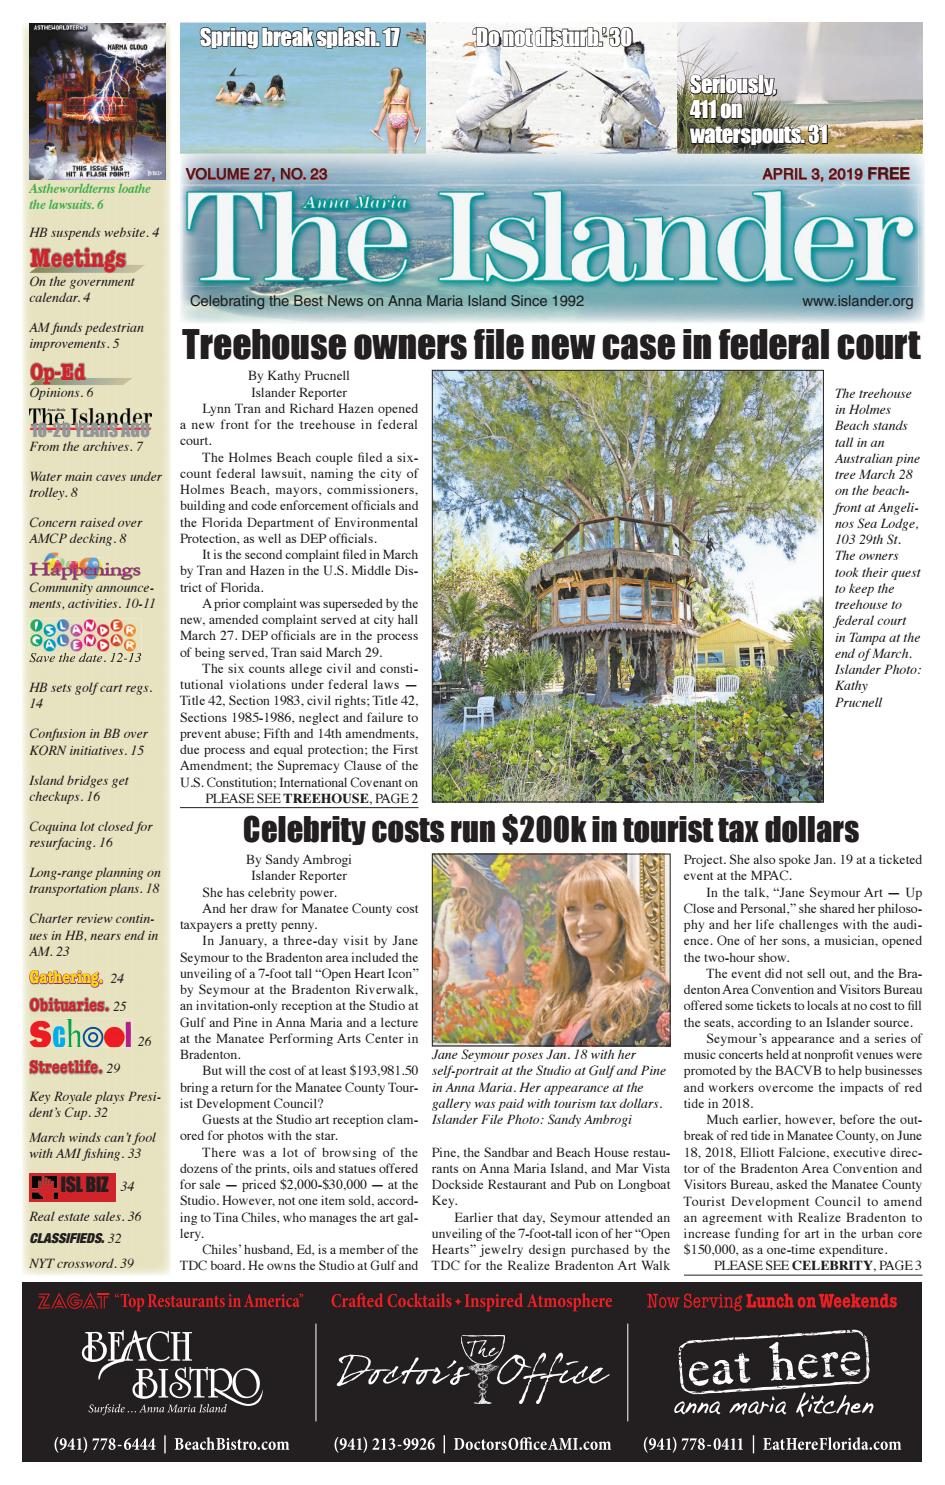 The Islander Newspaper E-Edition: Wednesday, April 3, 2019 by The